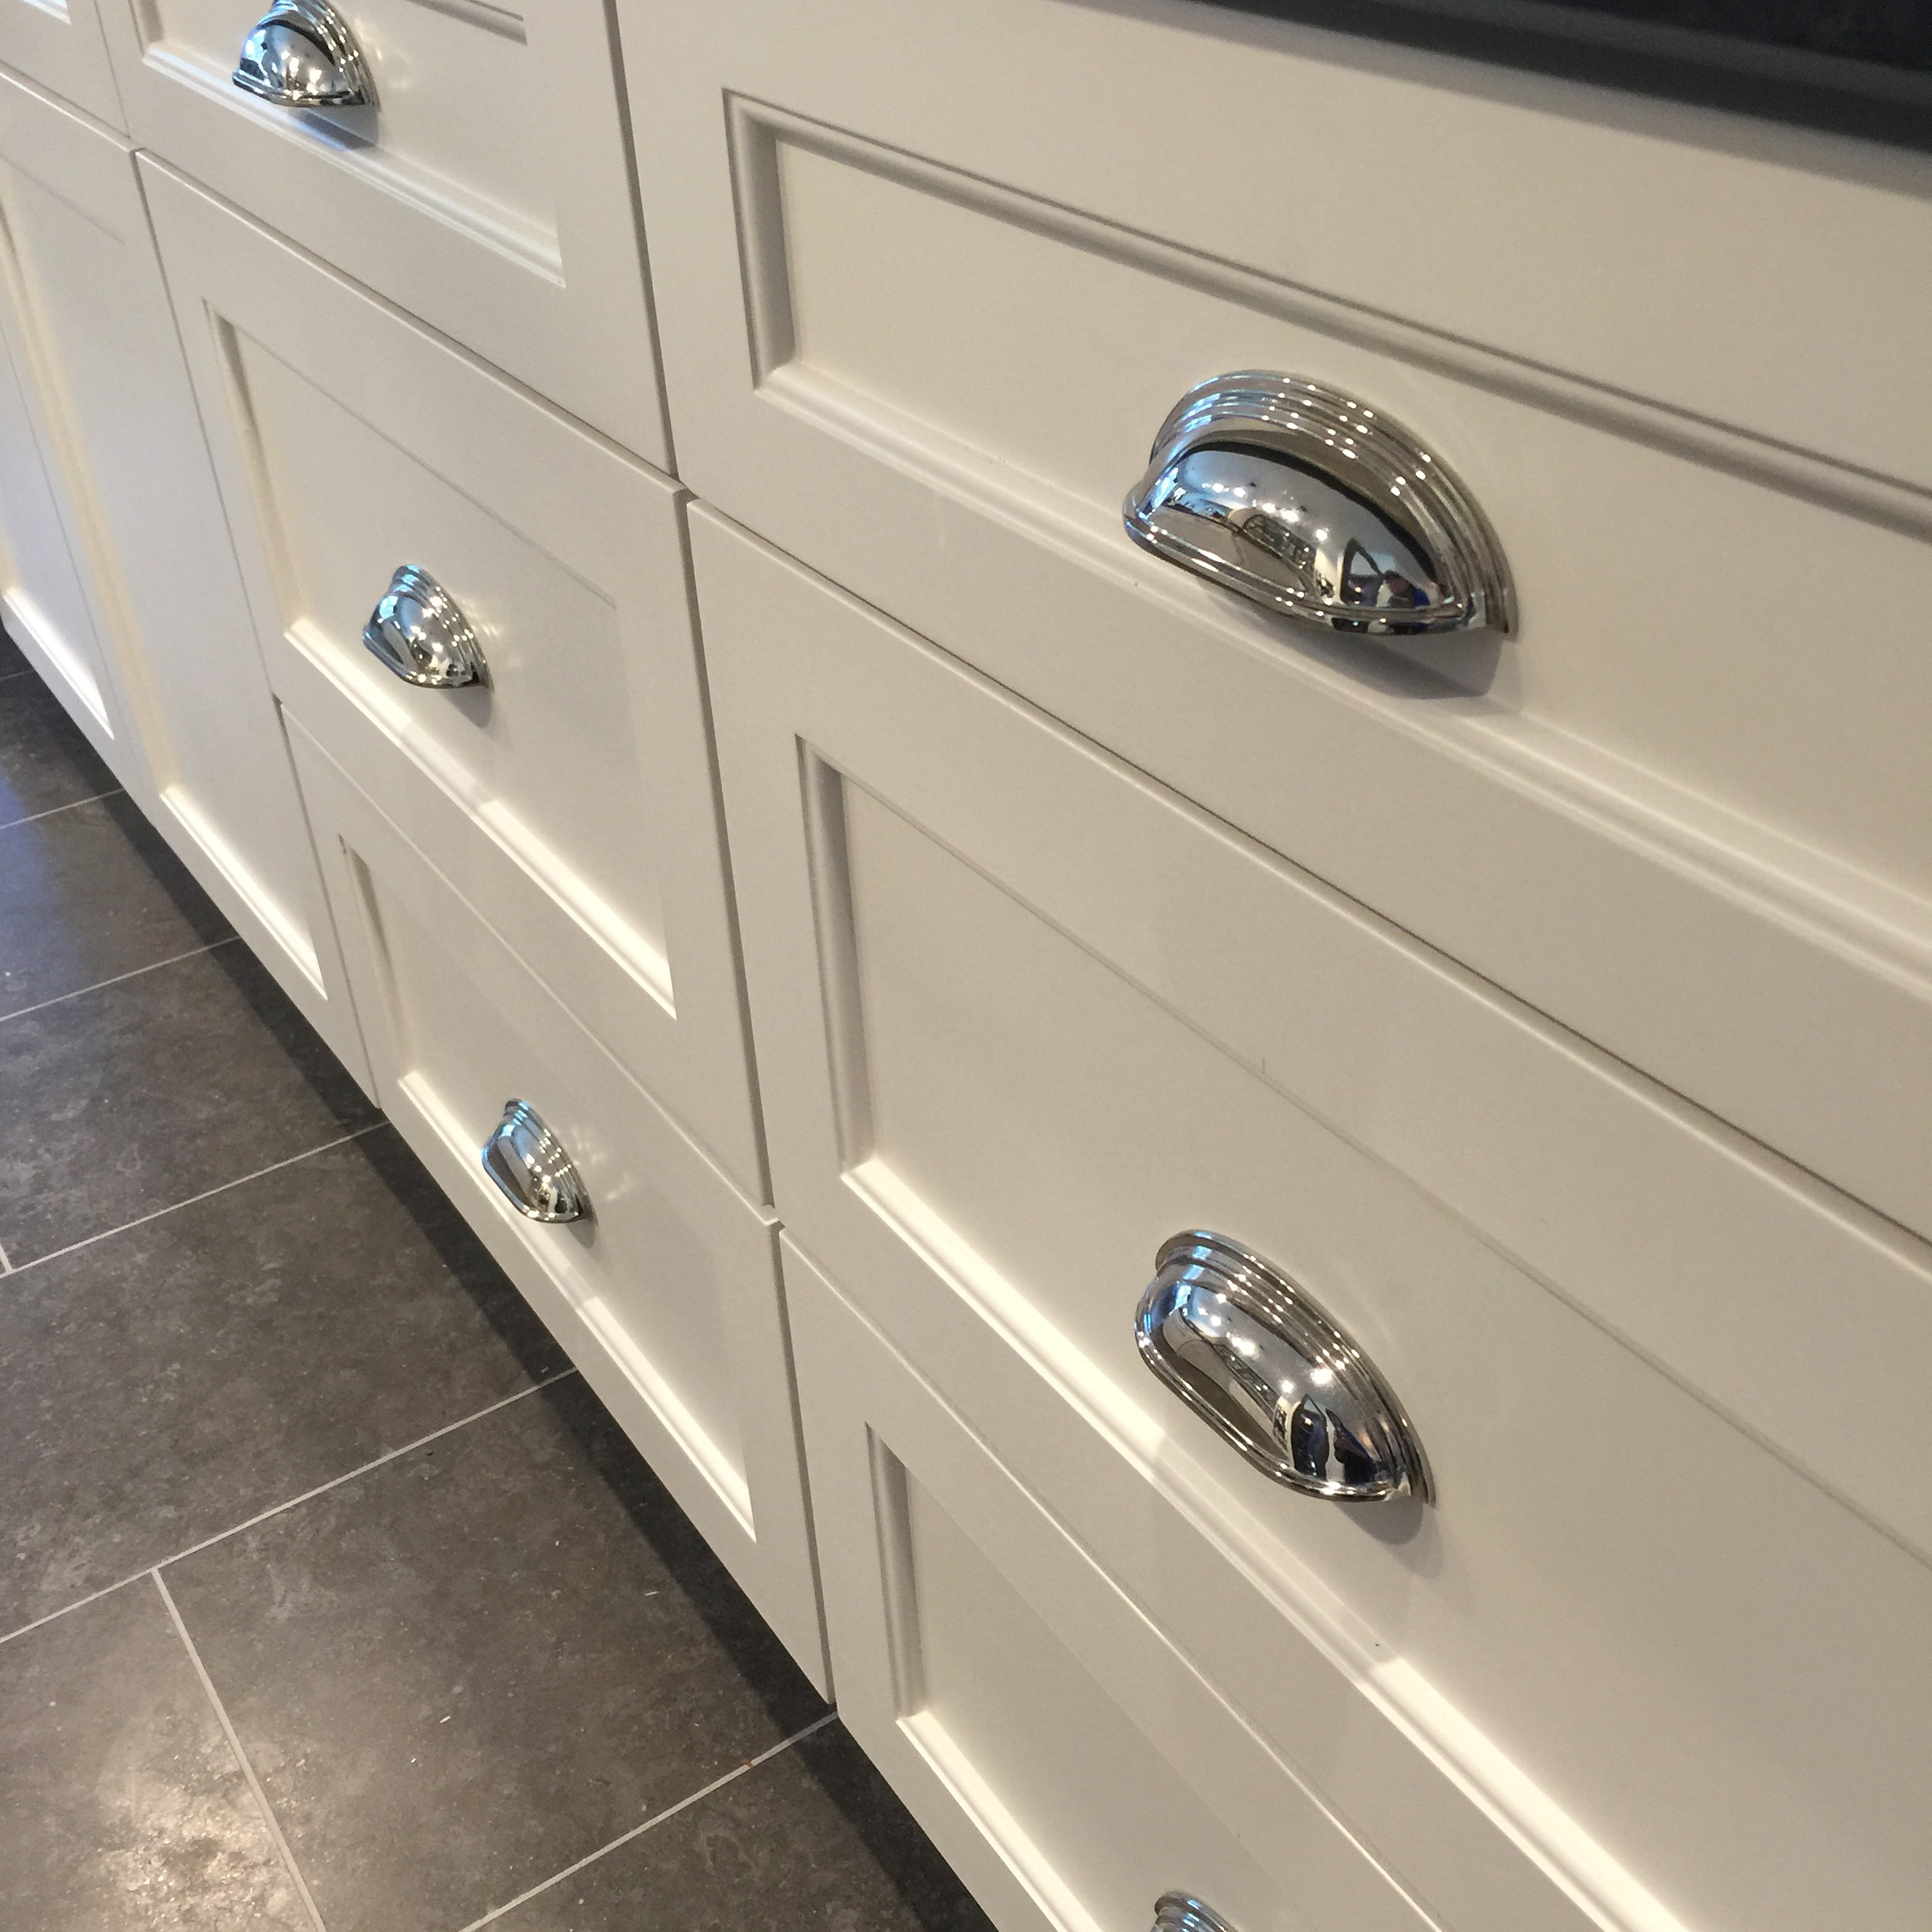 Wide deep drawers closed